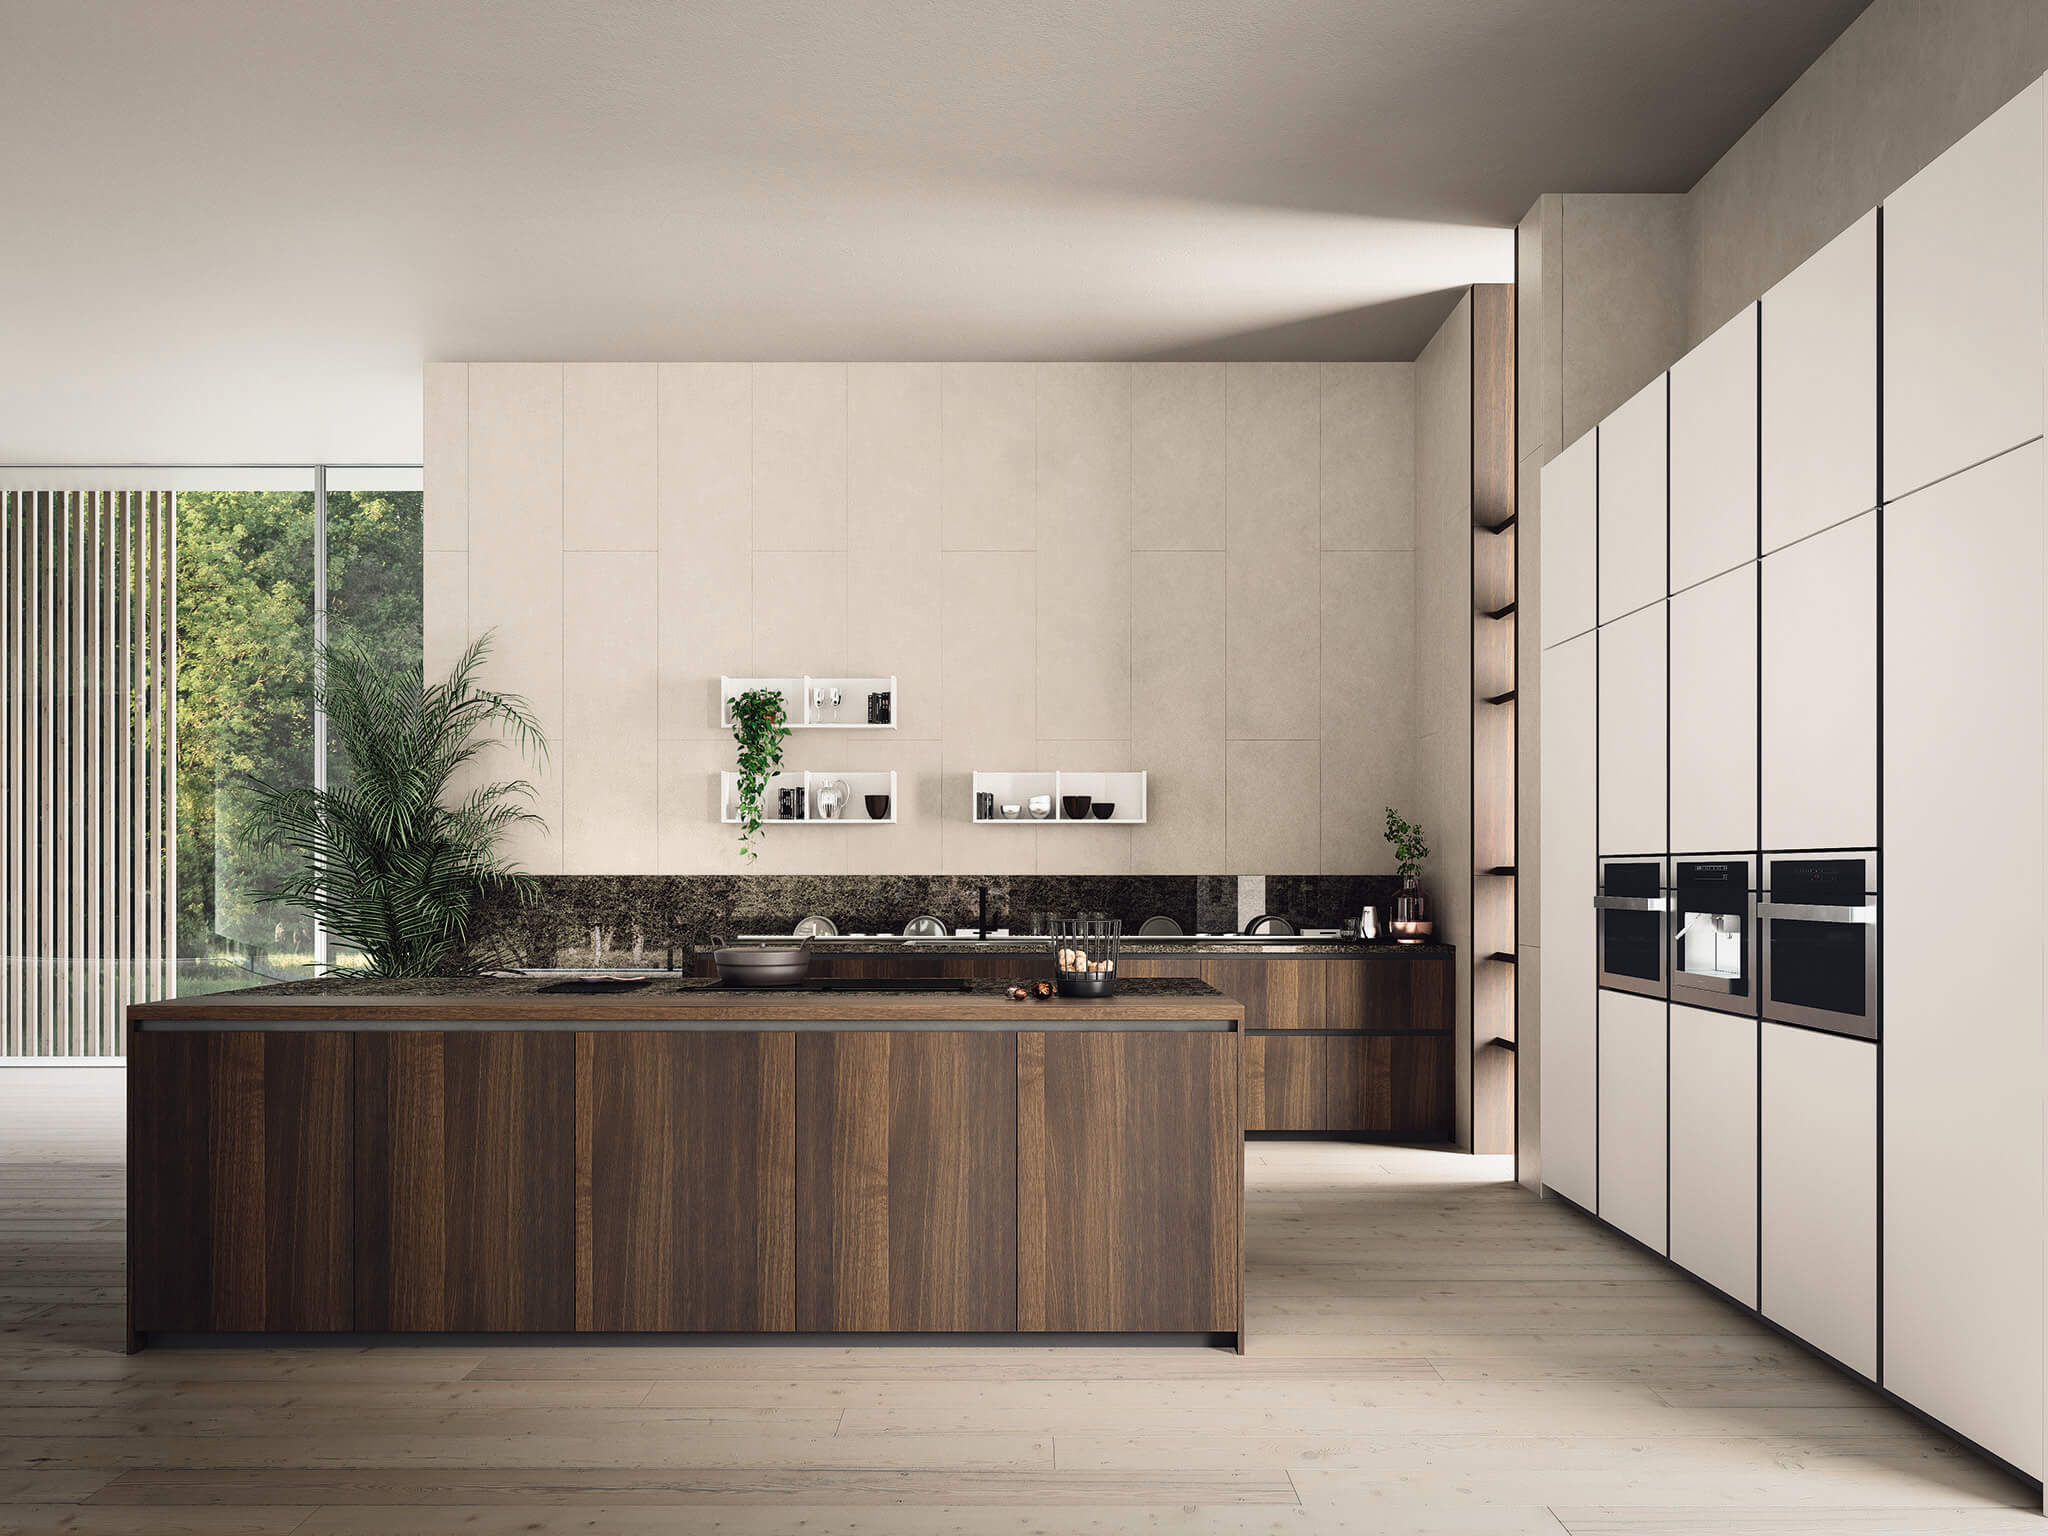 kate kitchen cabinetry archisesto chicago